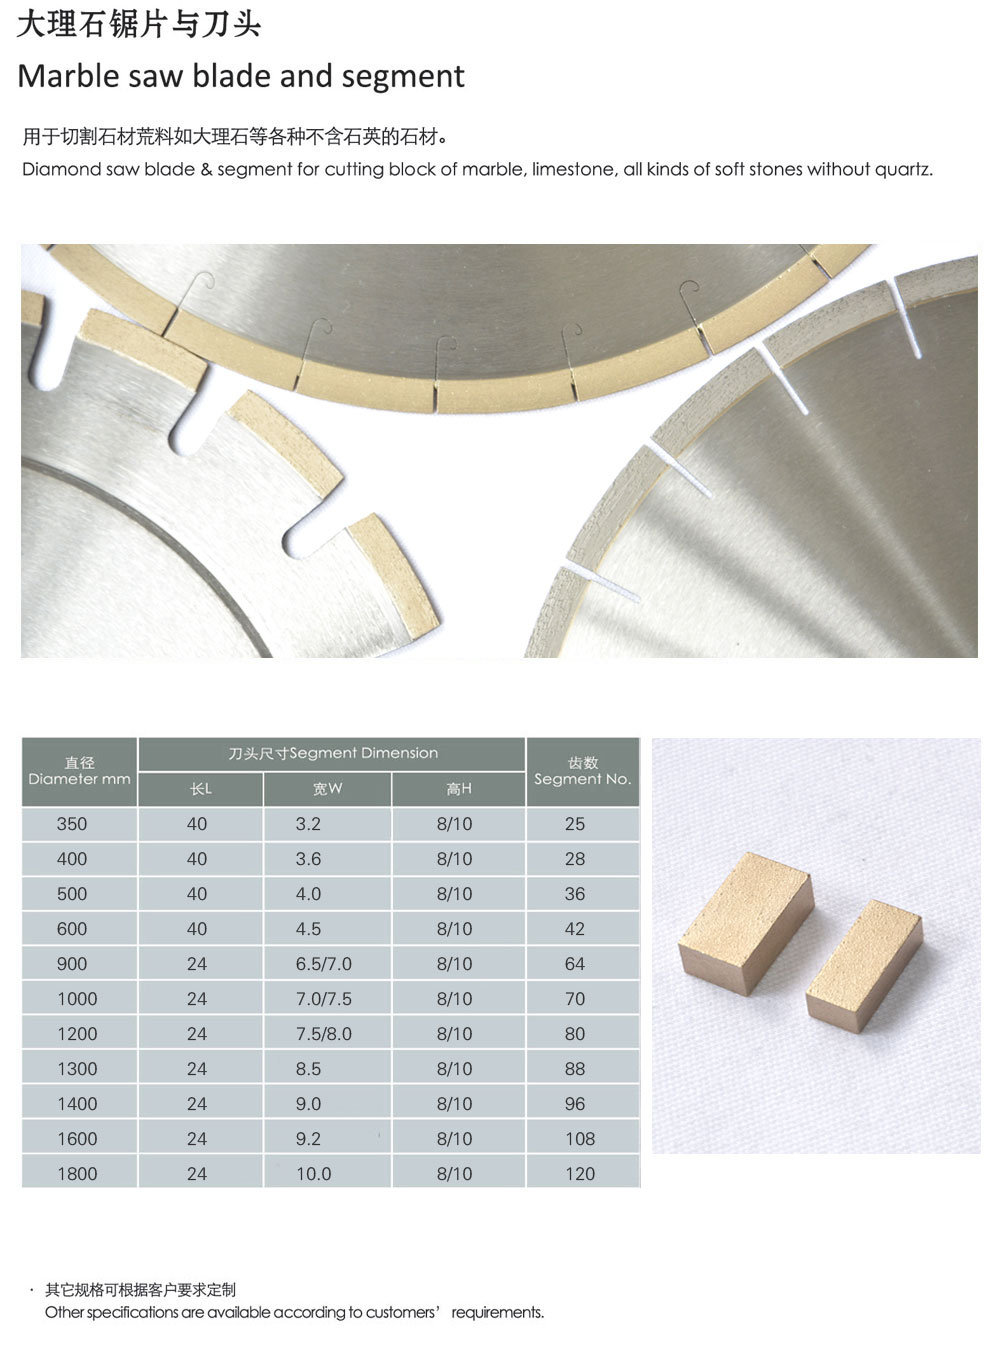 Marble saw blade and segment